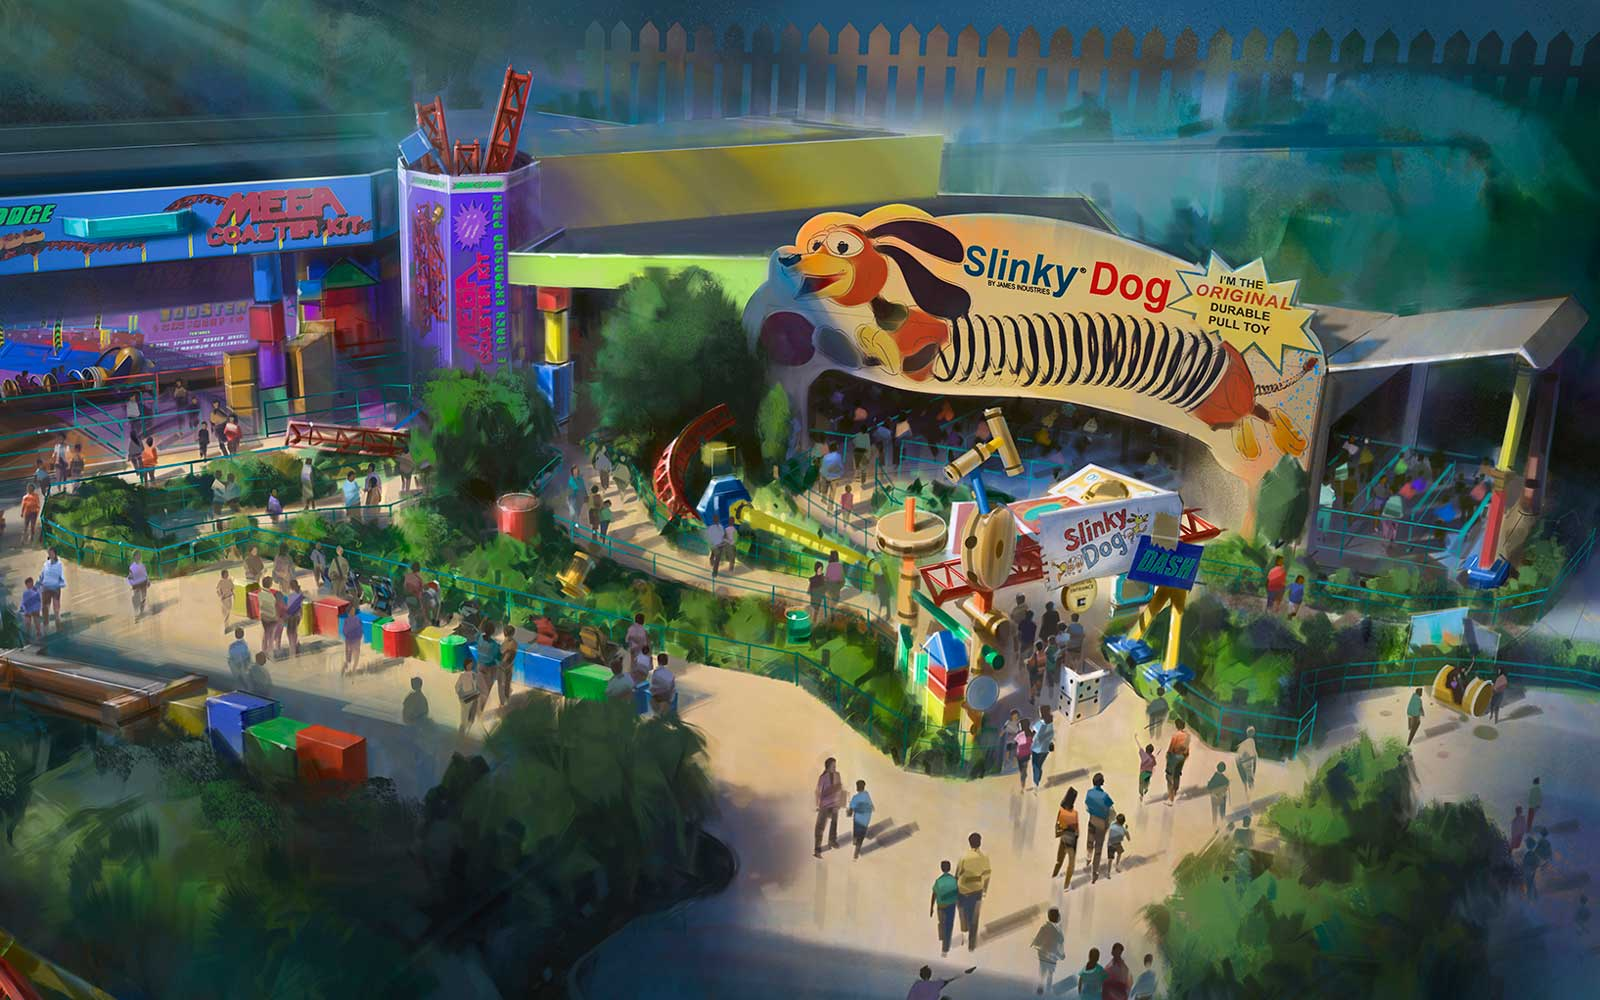 Toy Story Slinky Dog ride coming to Disney in 2018